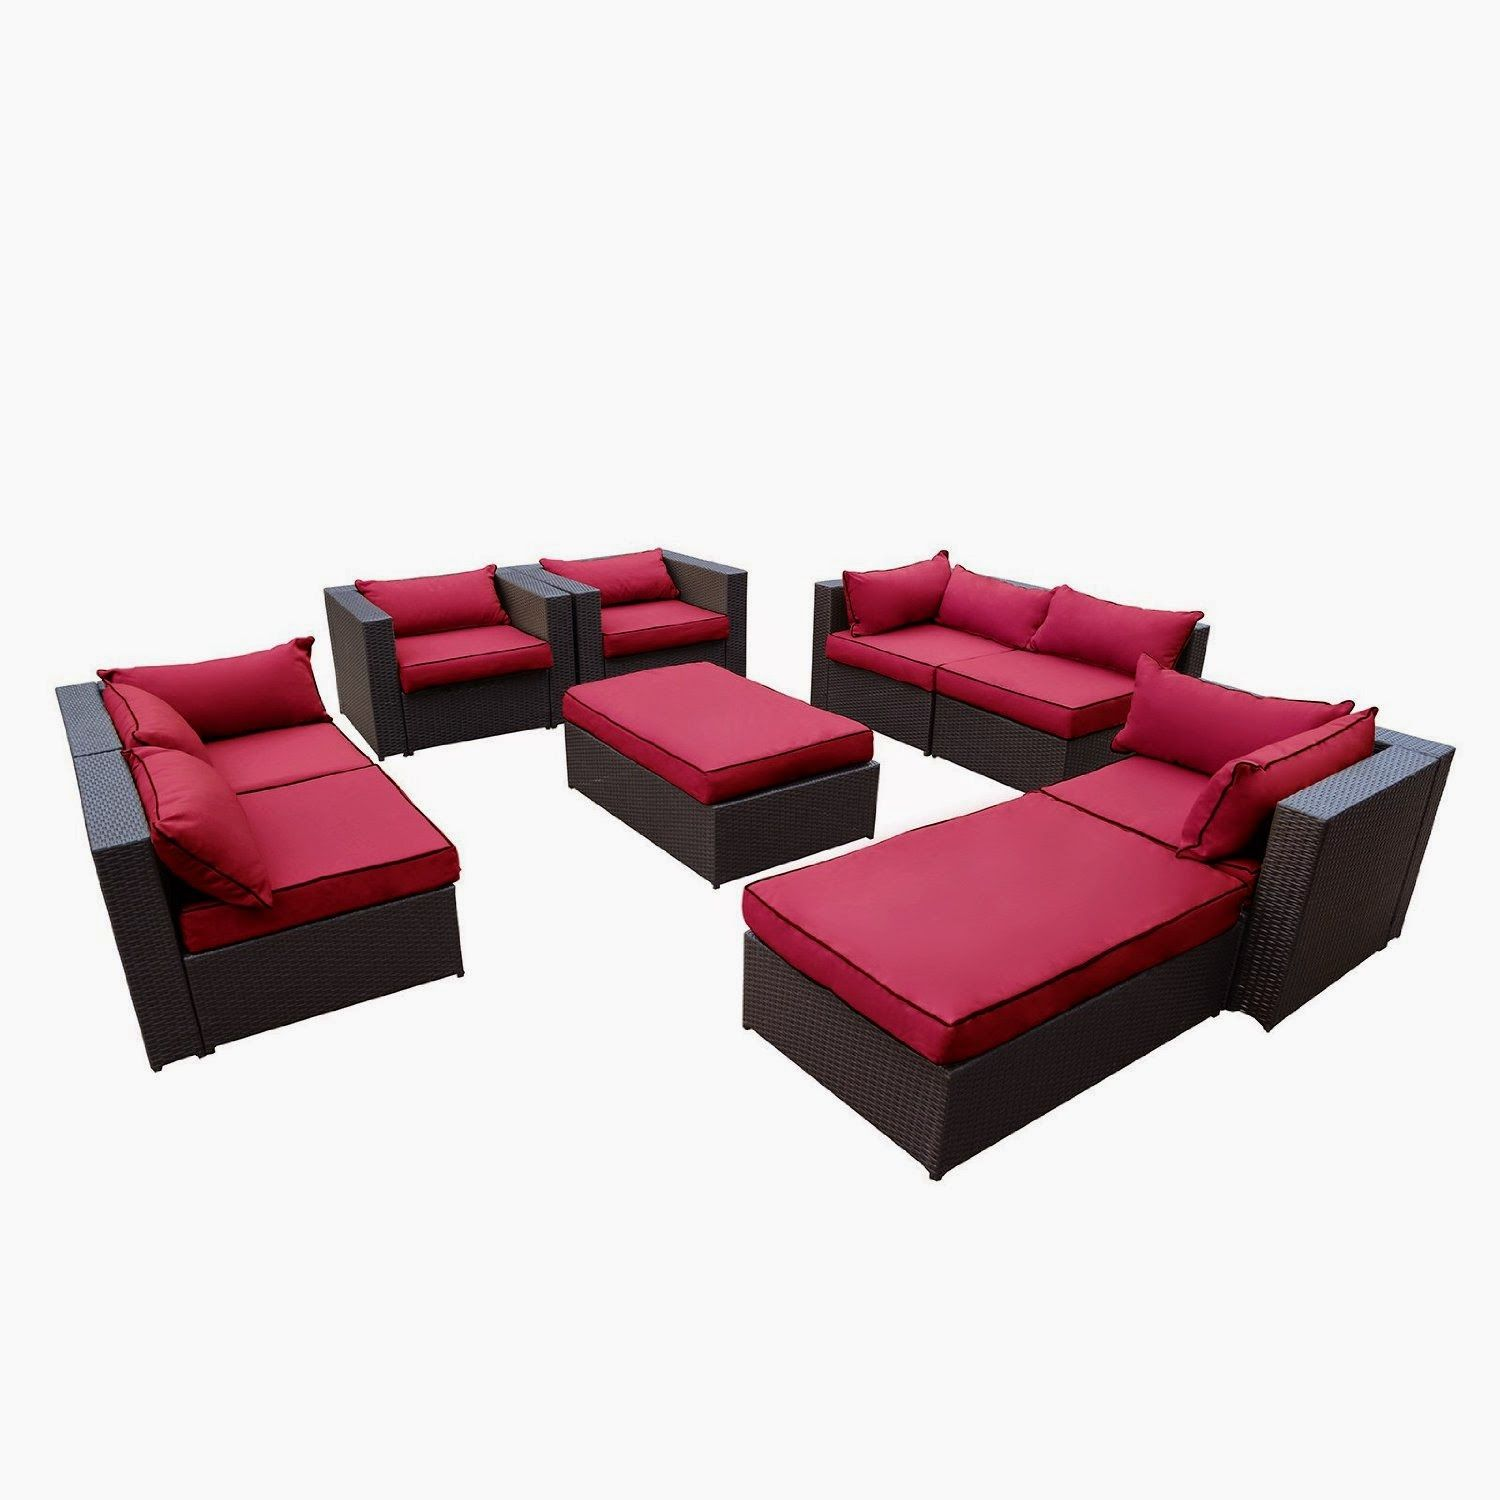 7c488619ce2f771126444444c4b1c673 Top Result 52 Lovely Sectional Patio Furniture Clearance Photography 2017 Pkt6